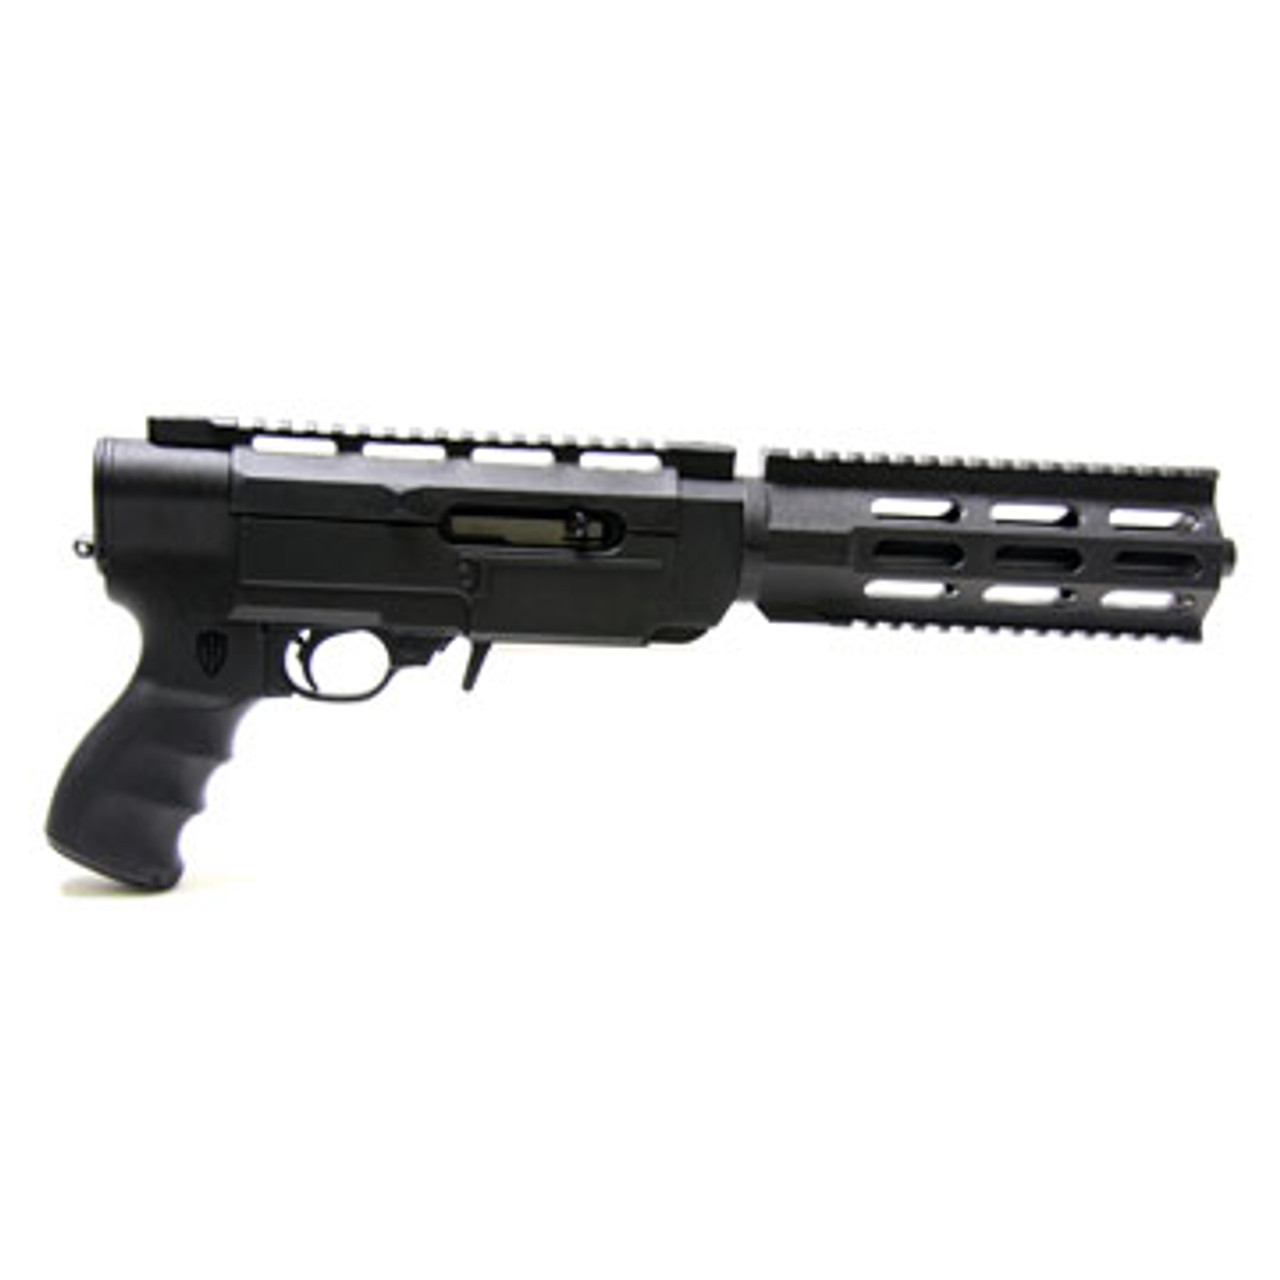 Archangel® 556P Conversion Stock for the Ruger® Charger™ - Black Polymer